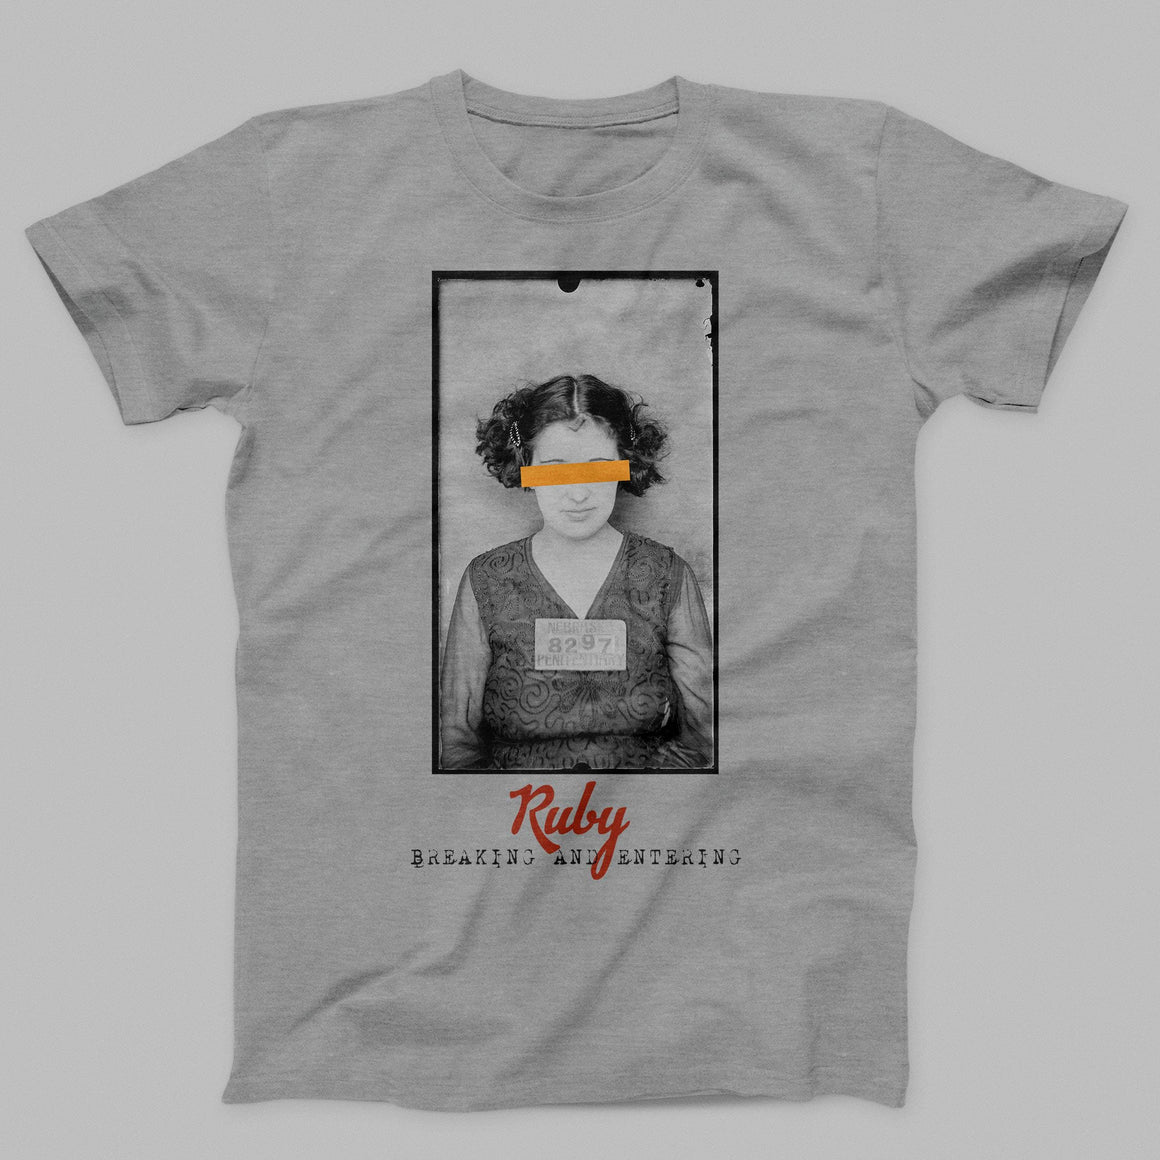 Ruby Mugshot Men's/Unisex T-shirt by DIRT & GLORY